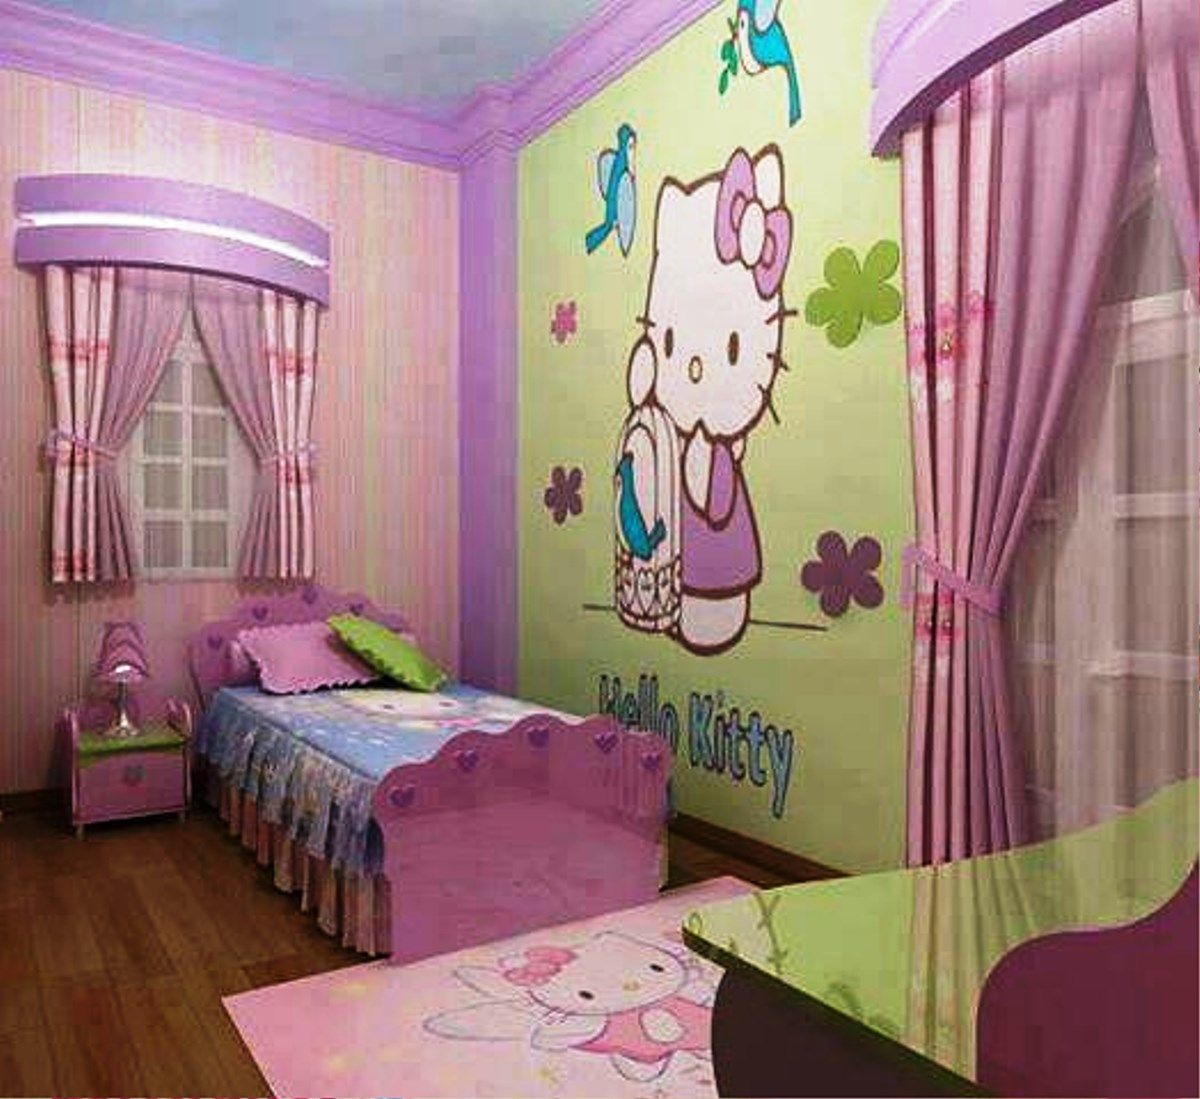 Bedrooms for girls hello kitty - Hello Kitty Girl S Room